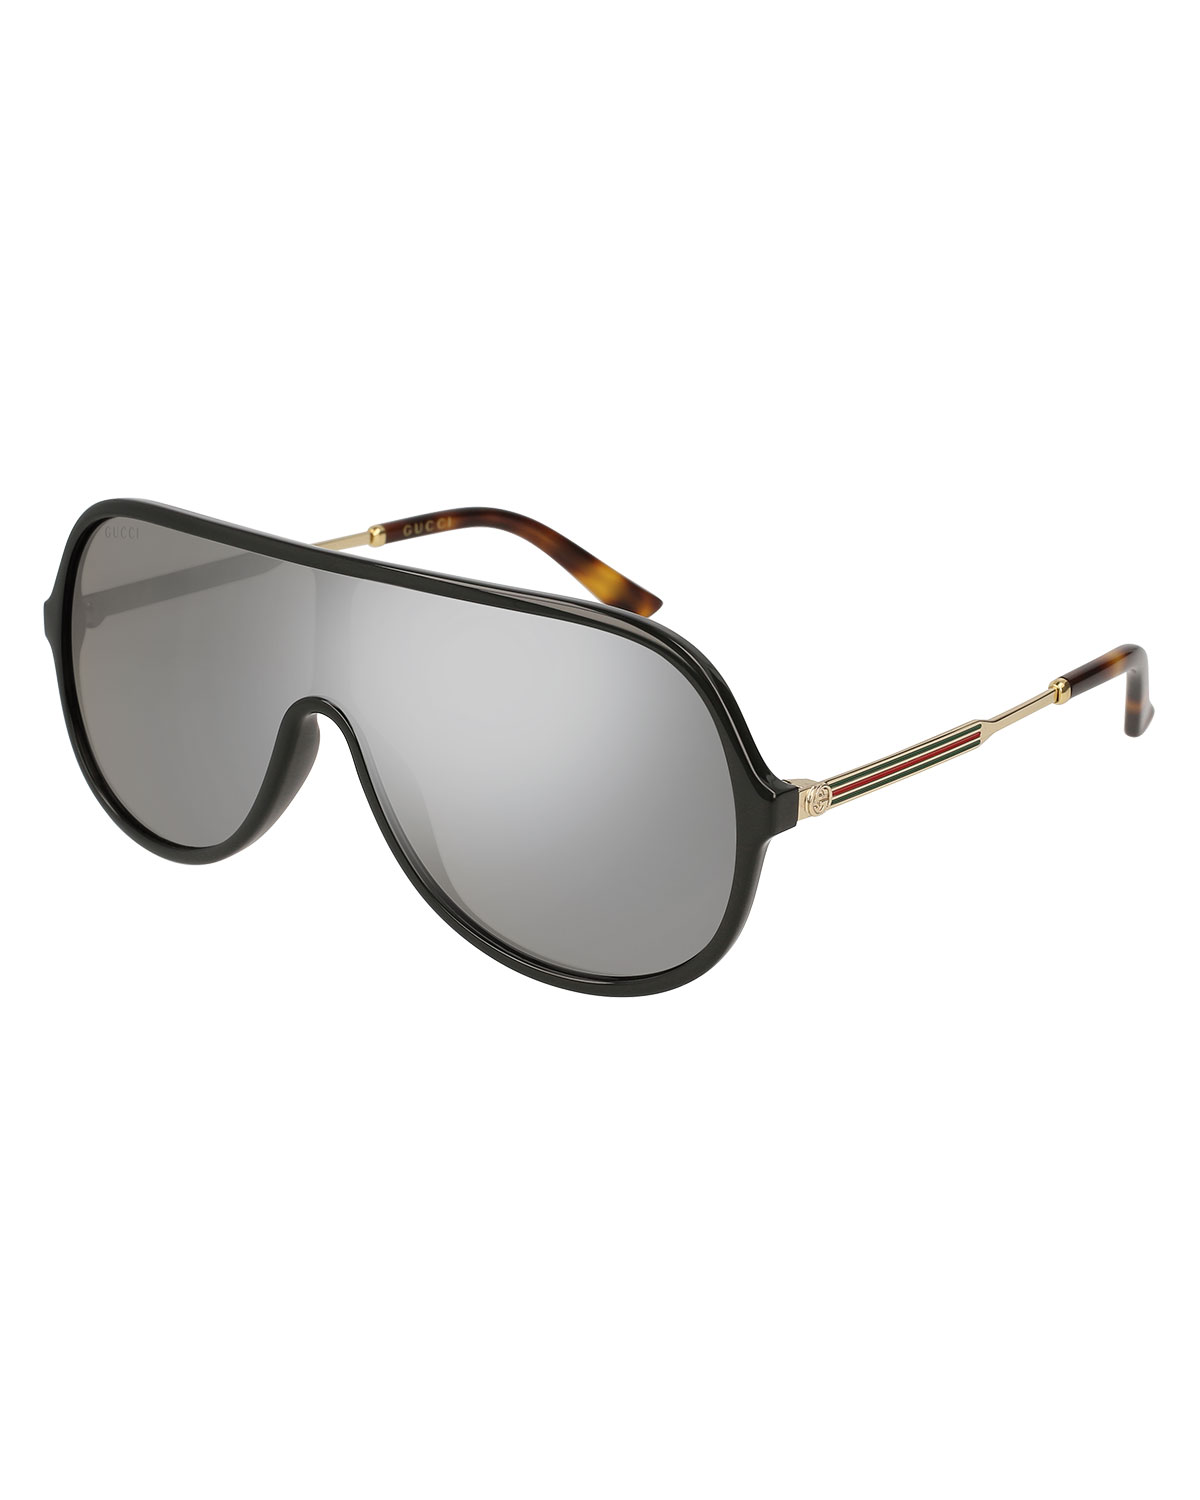 f7b92d3e753 Gucci Injected Metal Mirrored Aviator Sunglasses